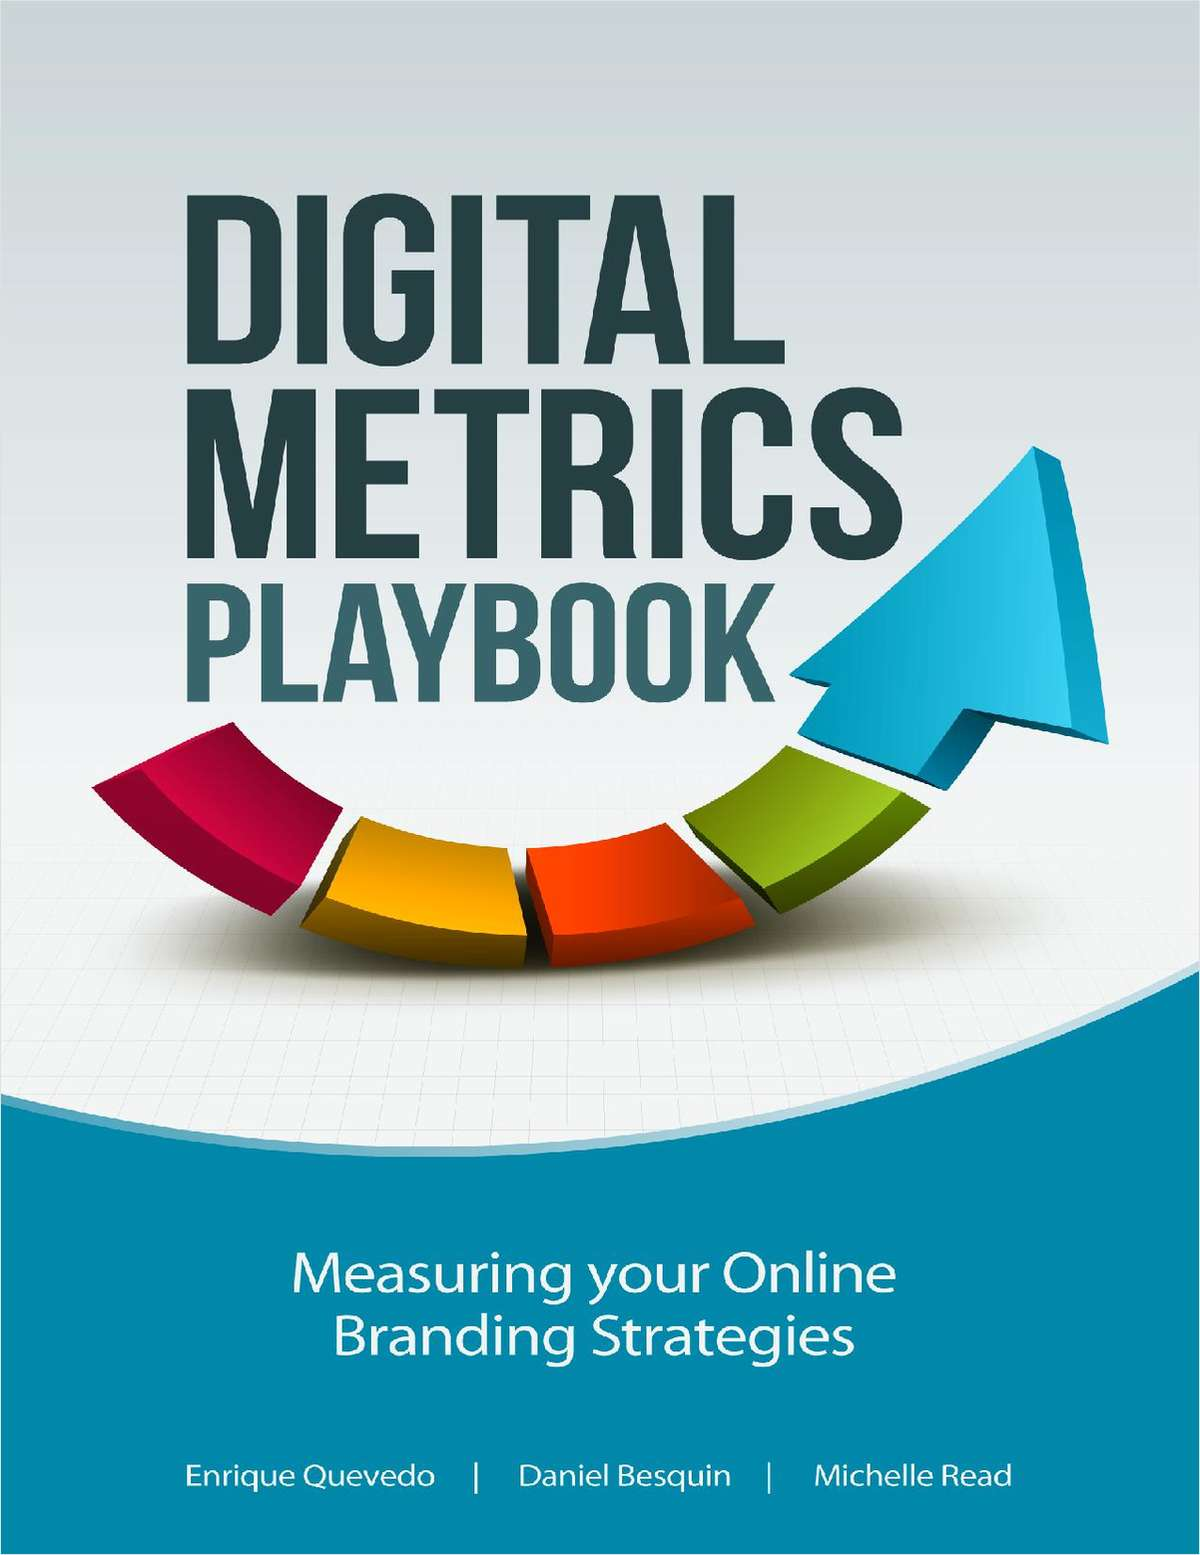 Digital Metrics Playbook: Measuring your Online Branding Strategies